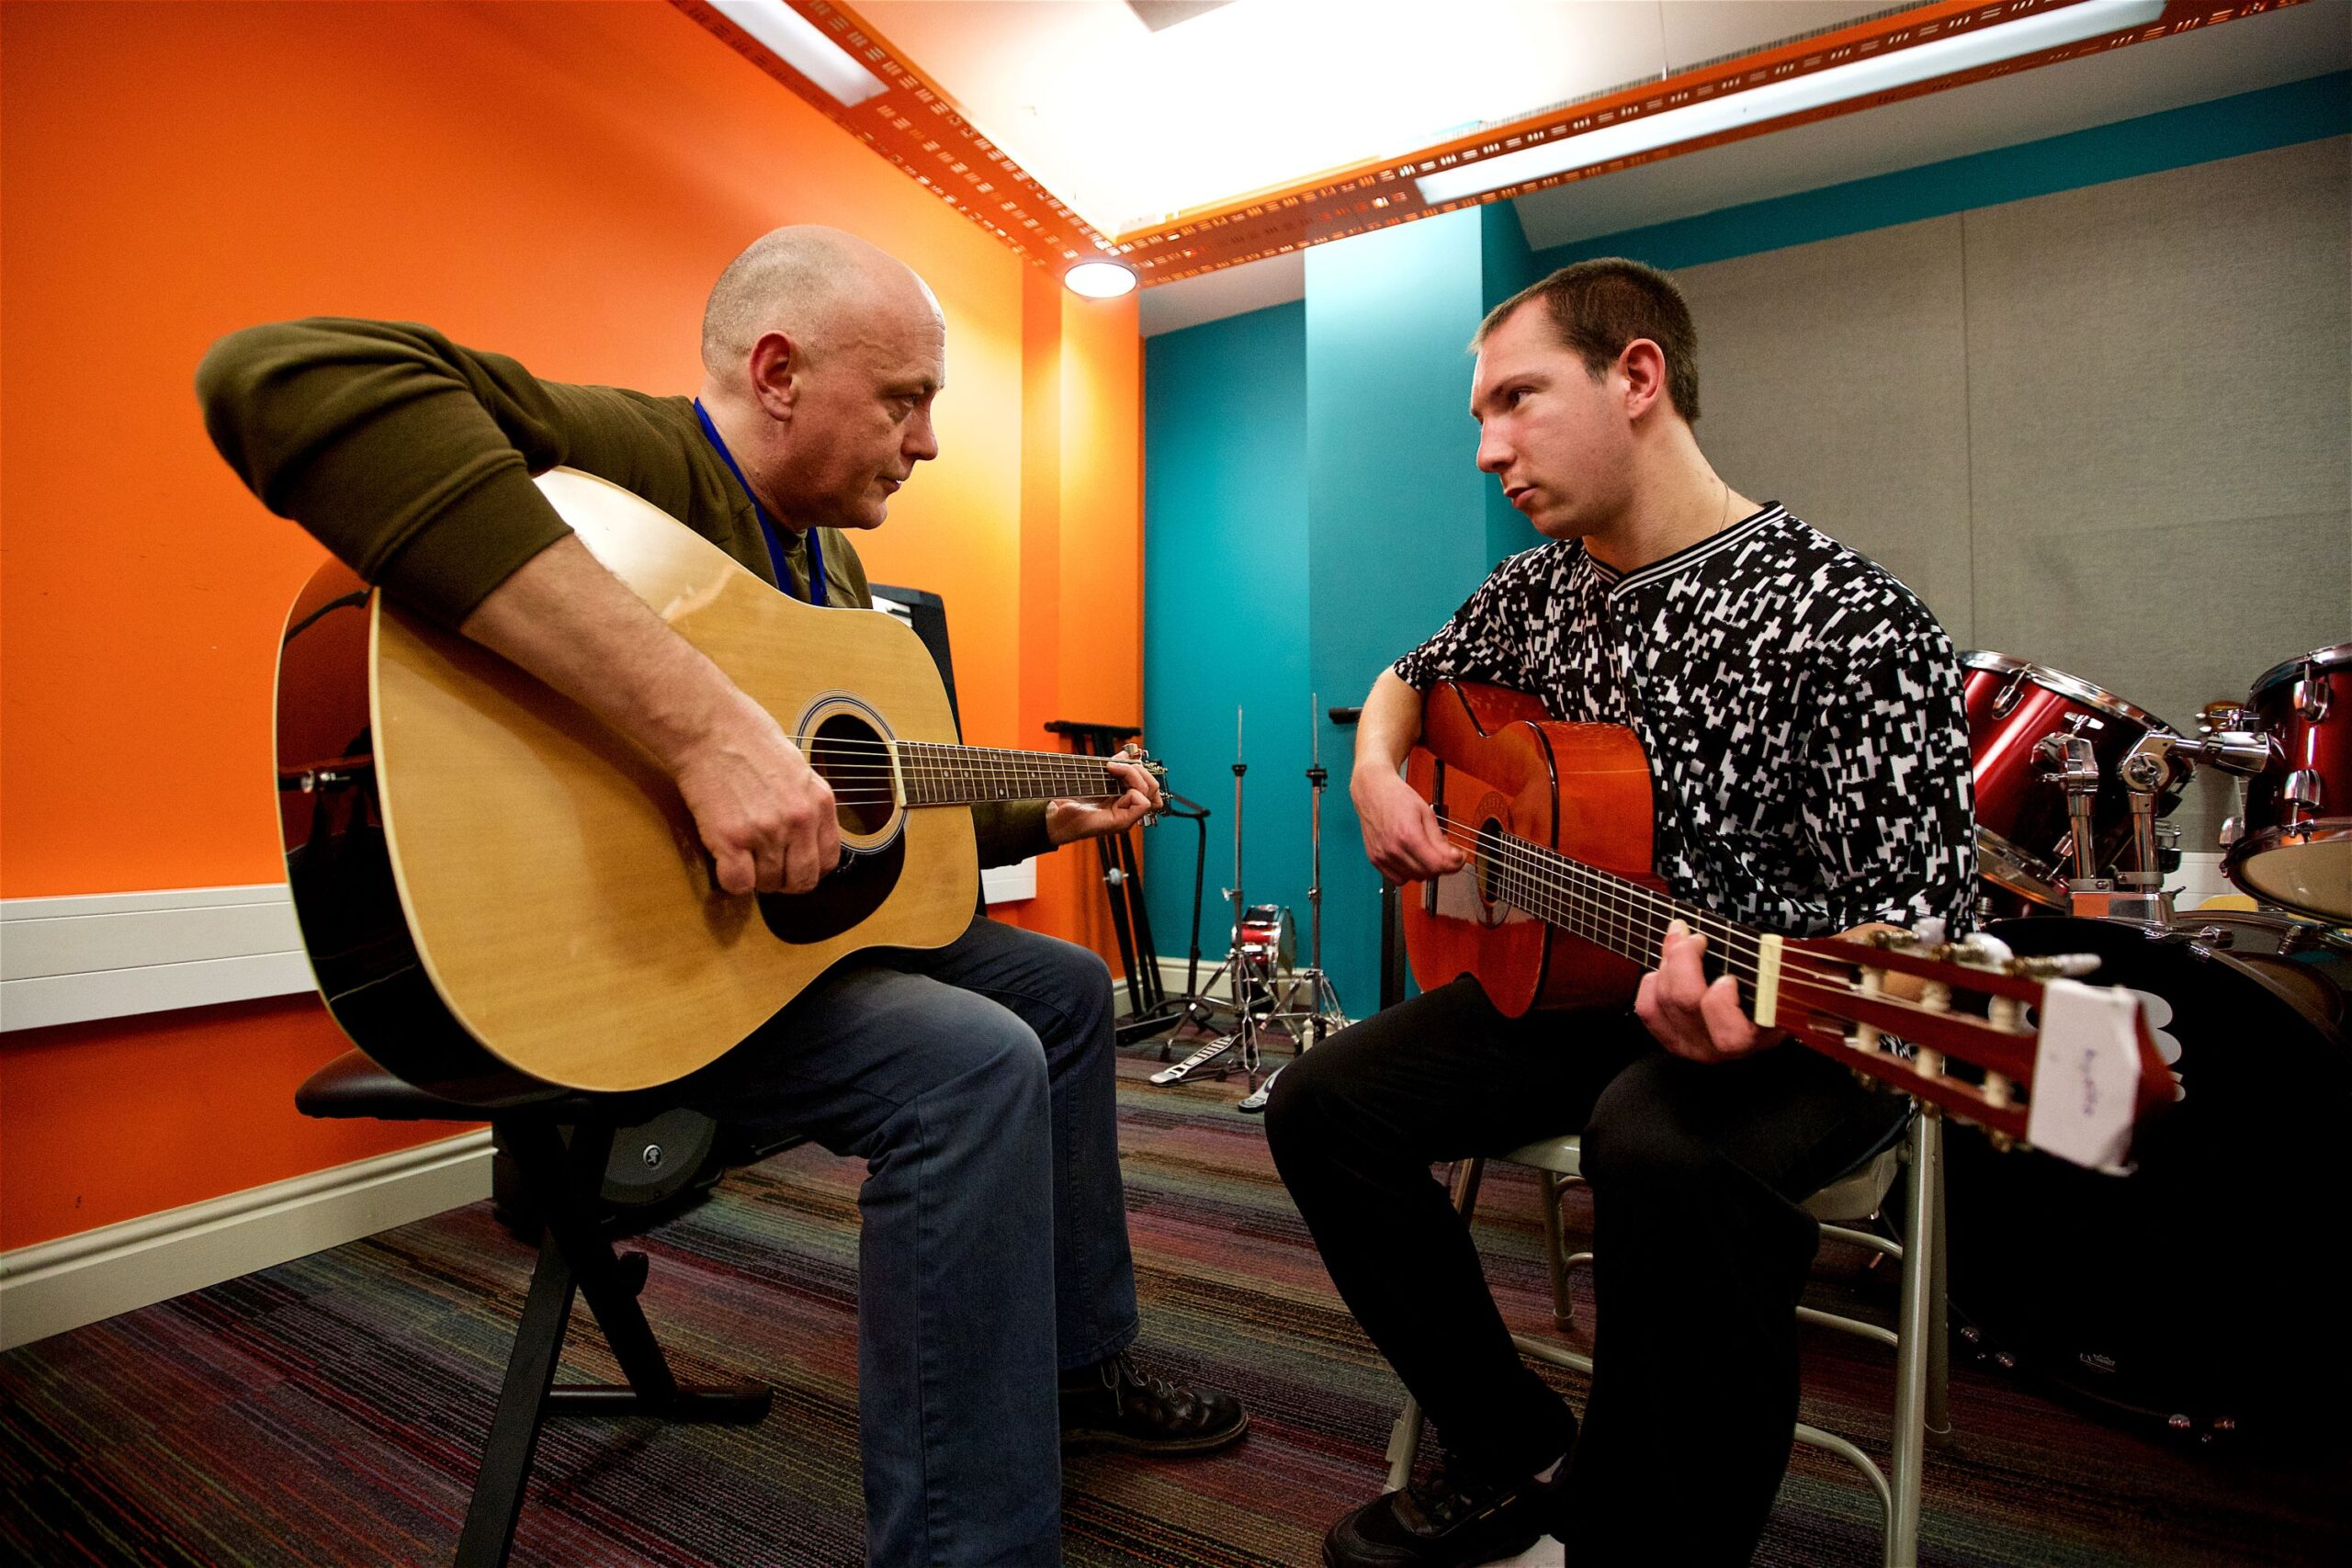 Two men sit facing each other with acoustic guitars